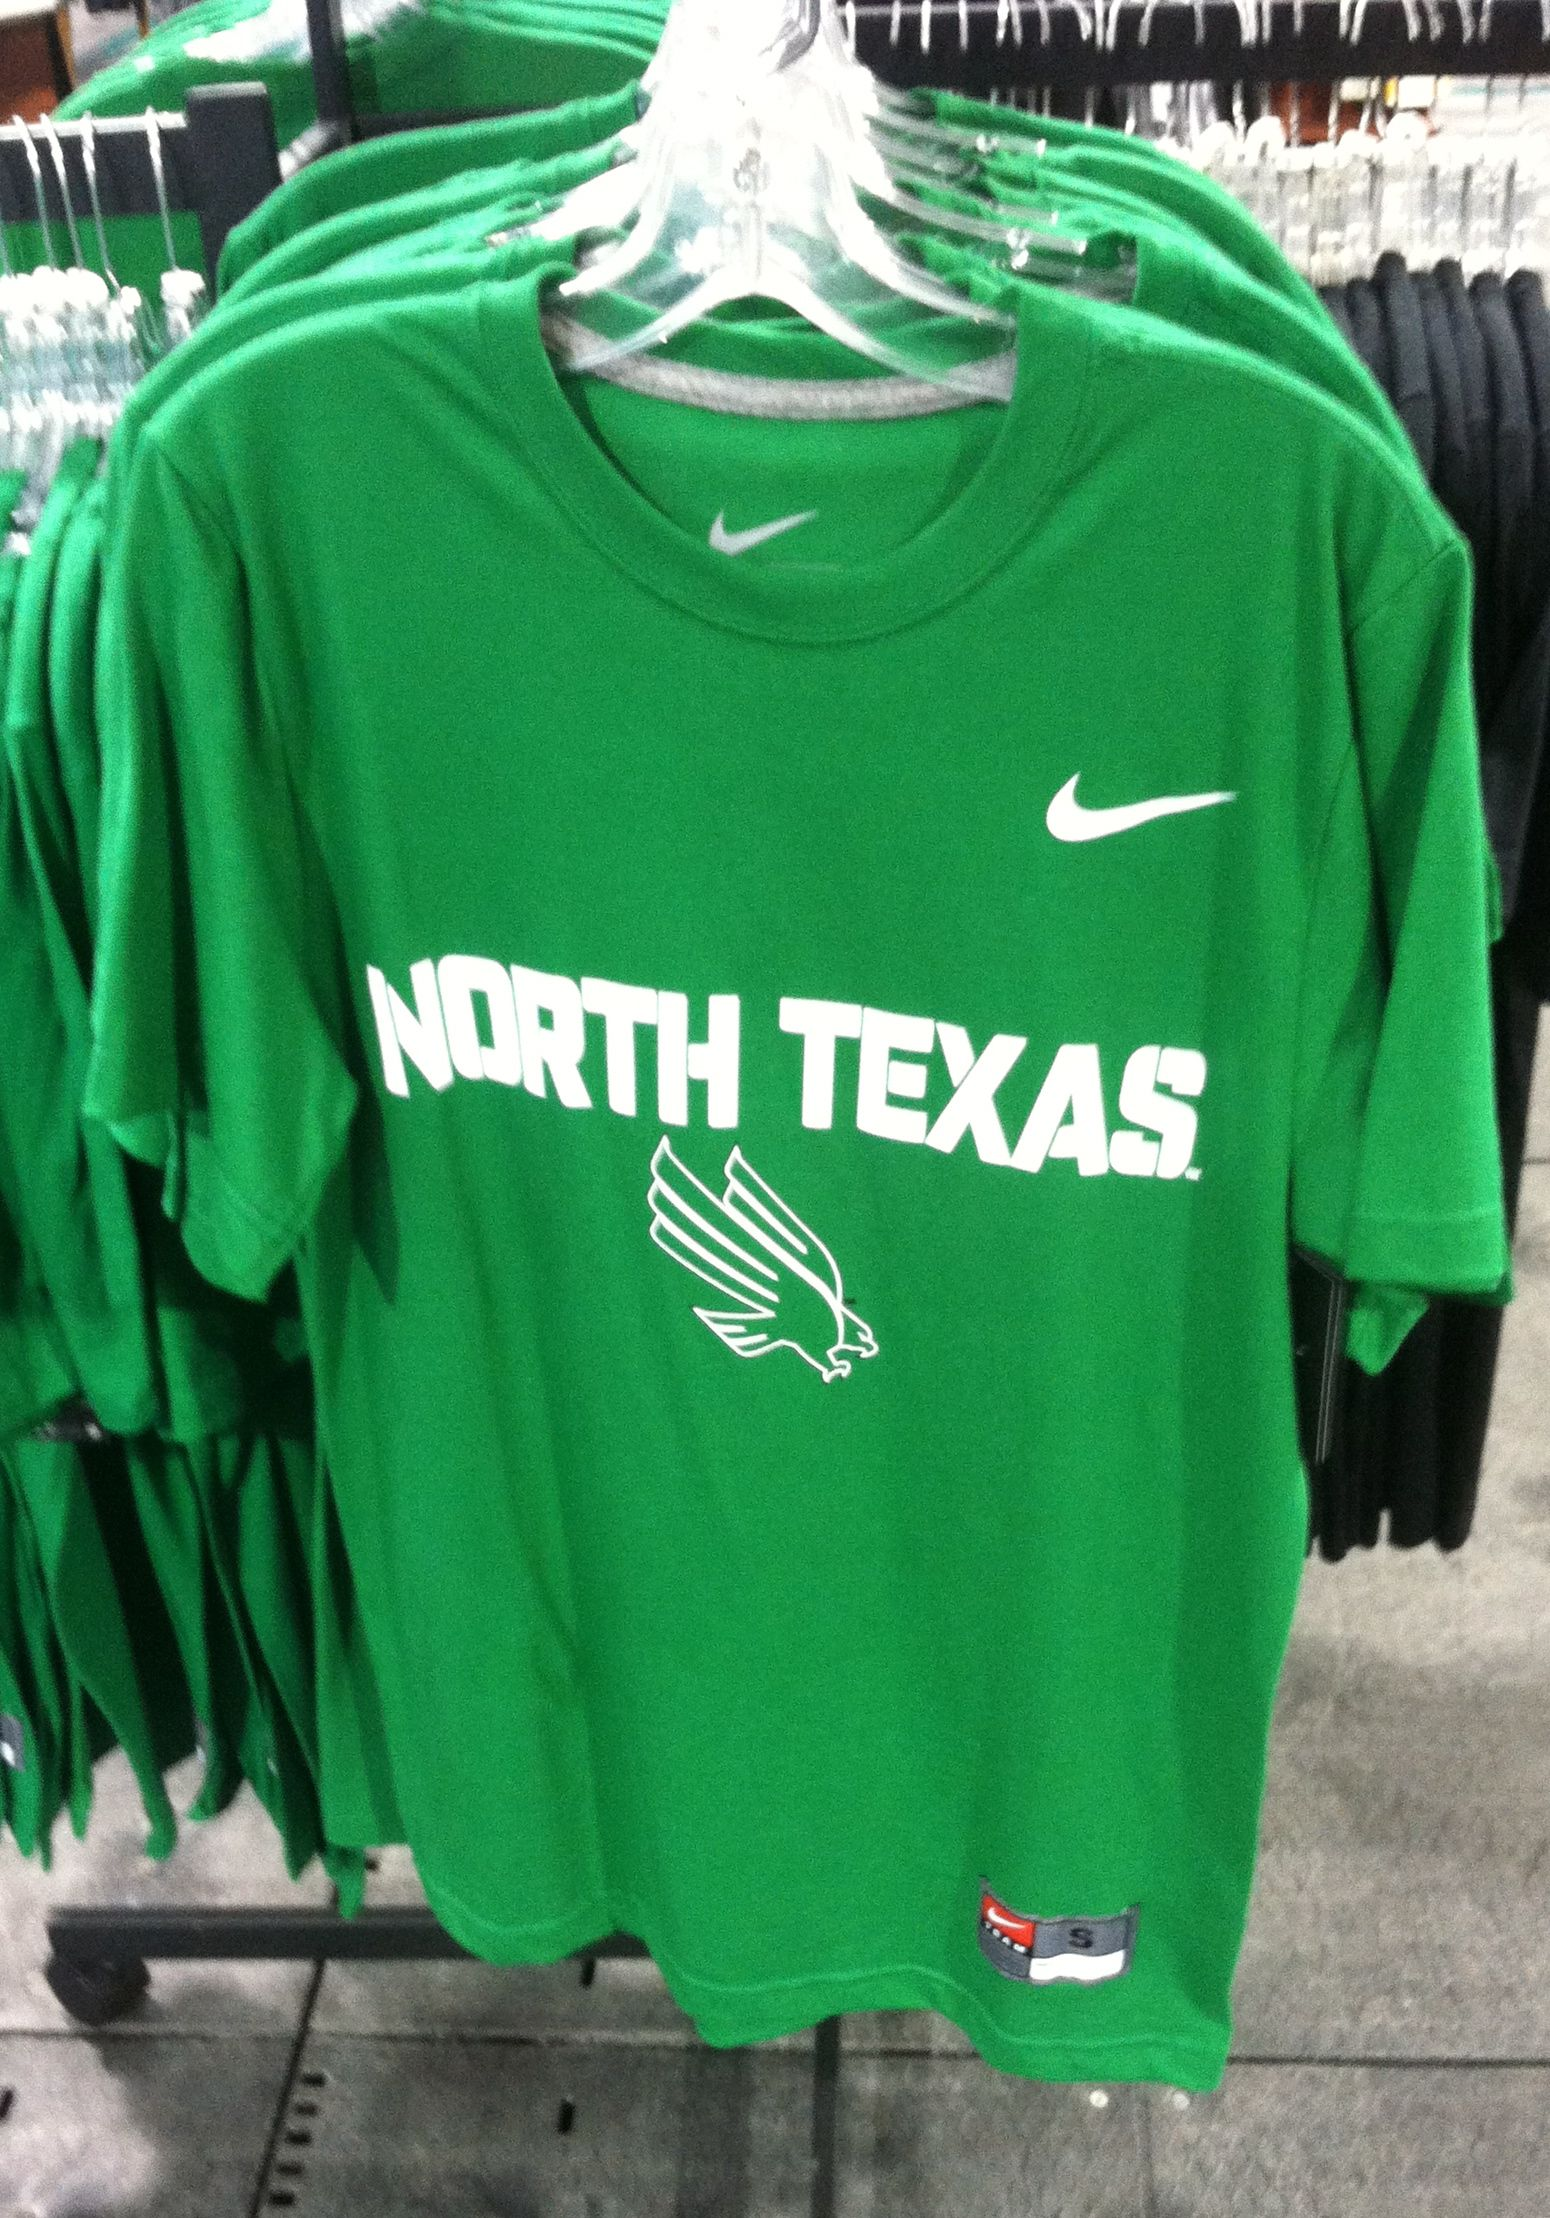 c777c4569a1b Nike North Texas DriFit shirt for  24.98 at the UNT Barnes and Noble  bookstore white tent